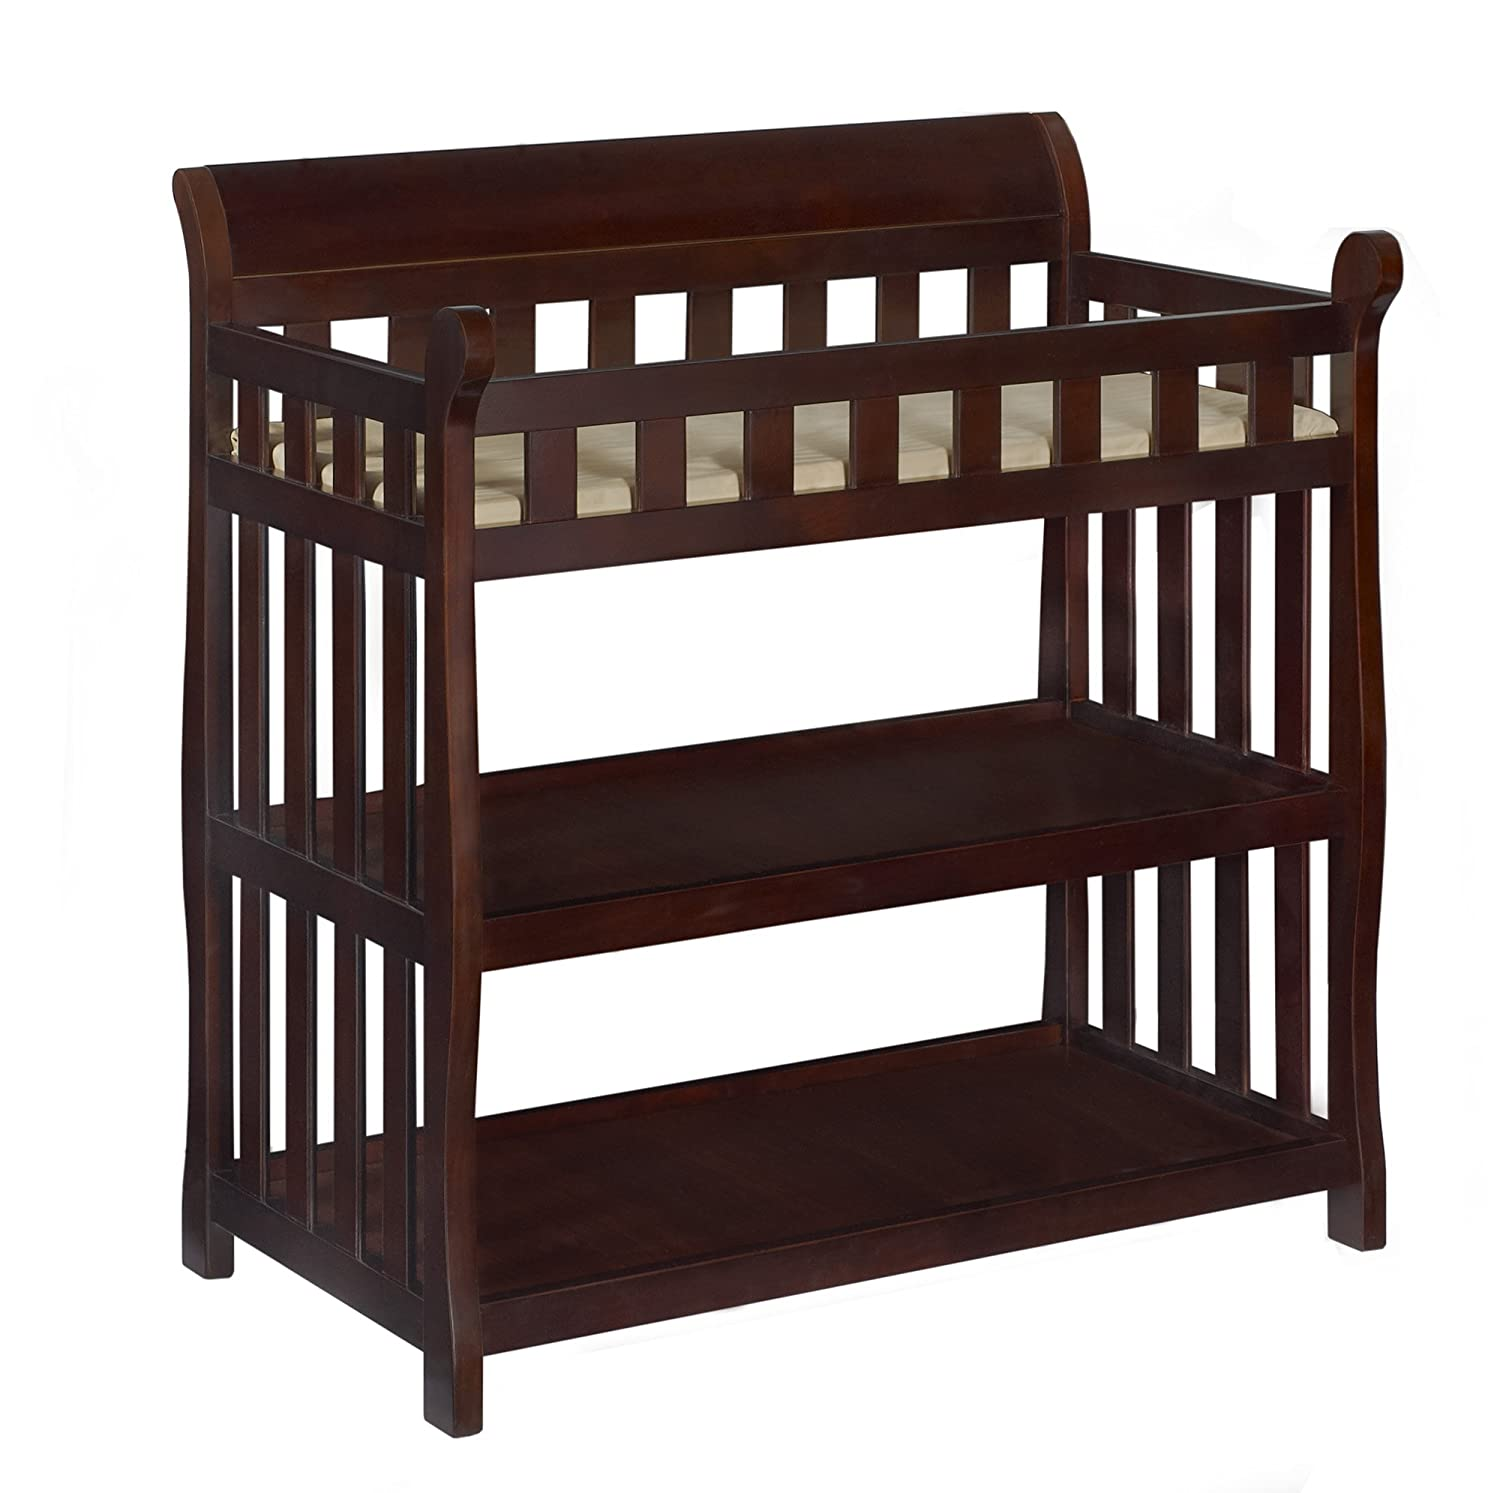 Charmant Amazon.com : Delta Children Eclipse Changing Table, Vintage Espresso : Baby